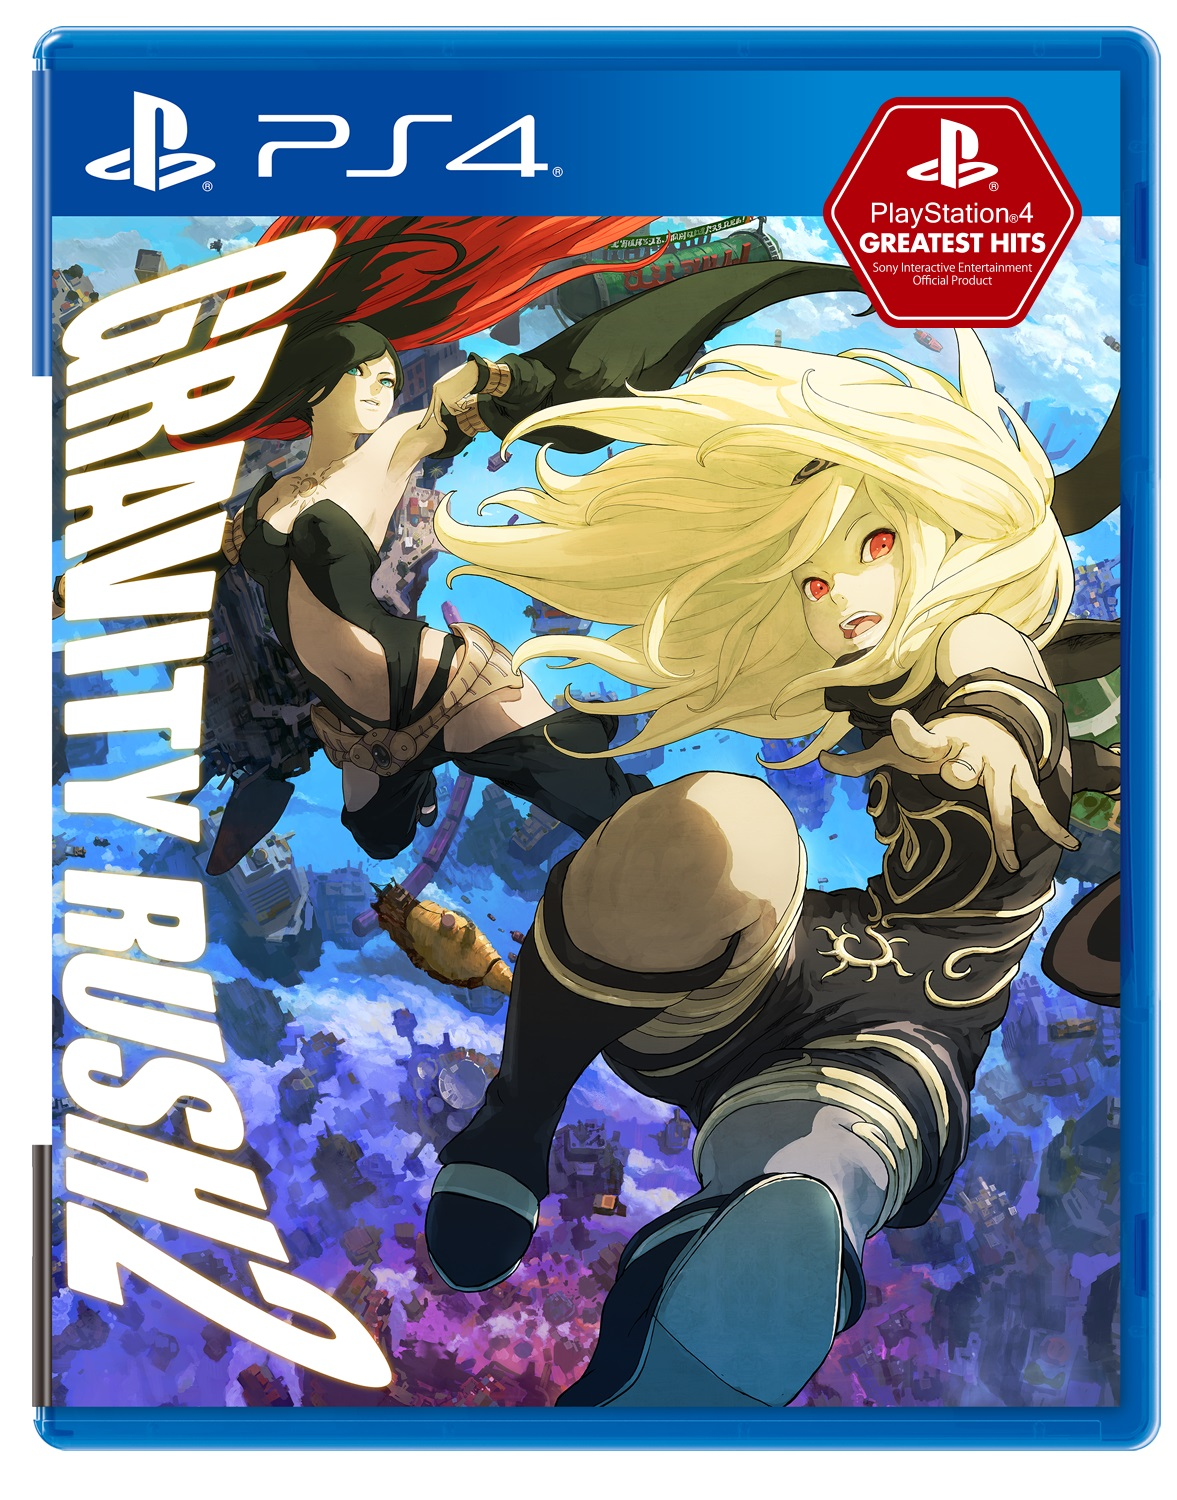 PS4 Greatest Hits - Asia - Gravity Rush 2